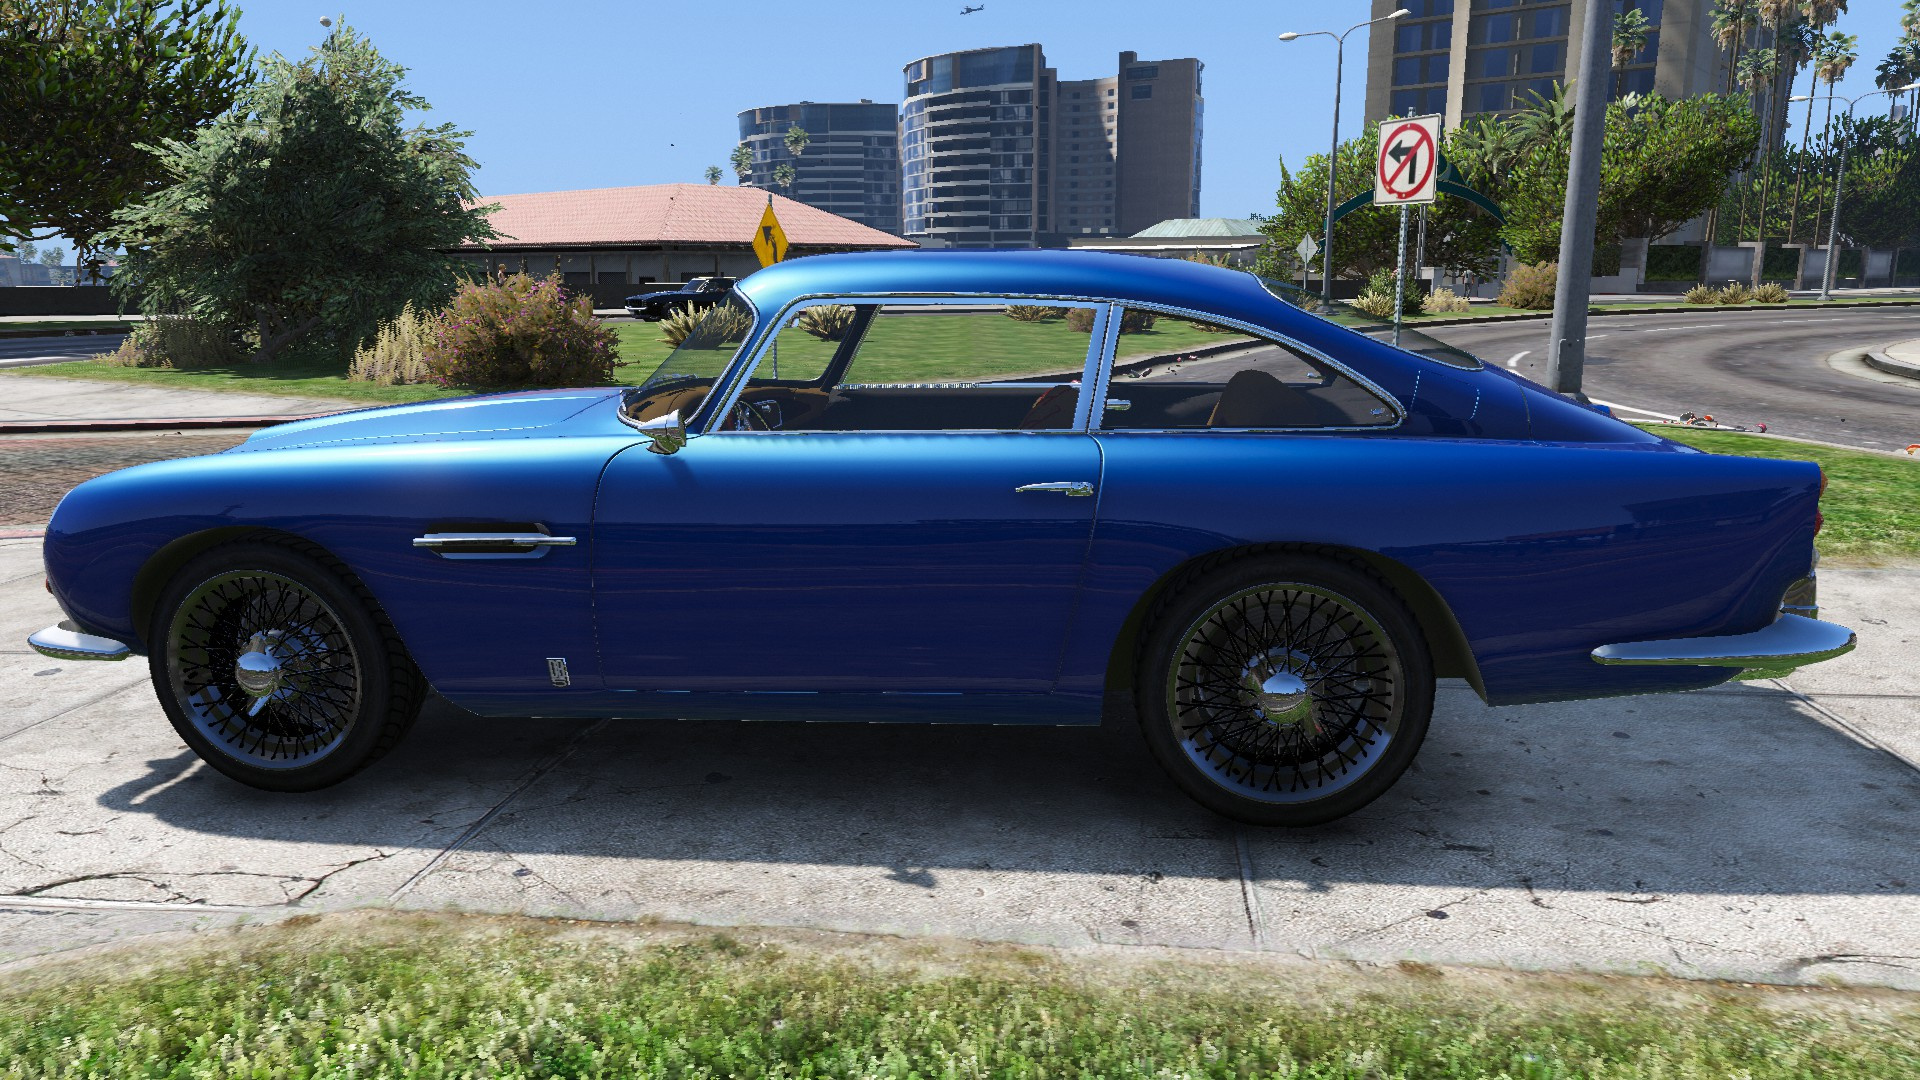 aston martin db5 in gta 5 with 1964 Aston Martin Db5 Vantage on Diarama further Watch together with Watch likewise Game moreover The Real Life Cars In The Grand Theft Auto 5 2nd Trailer.